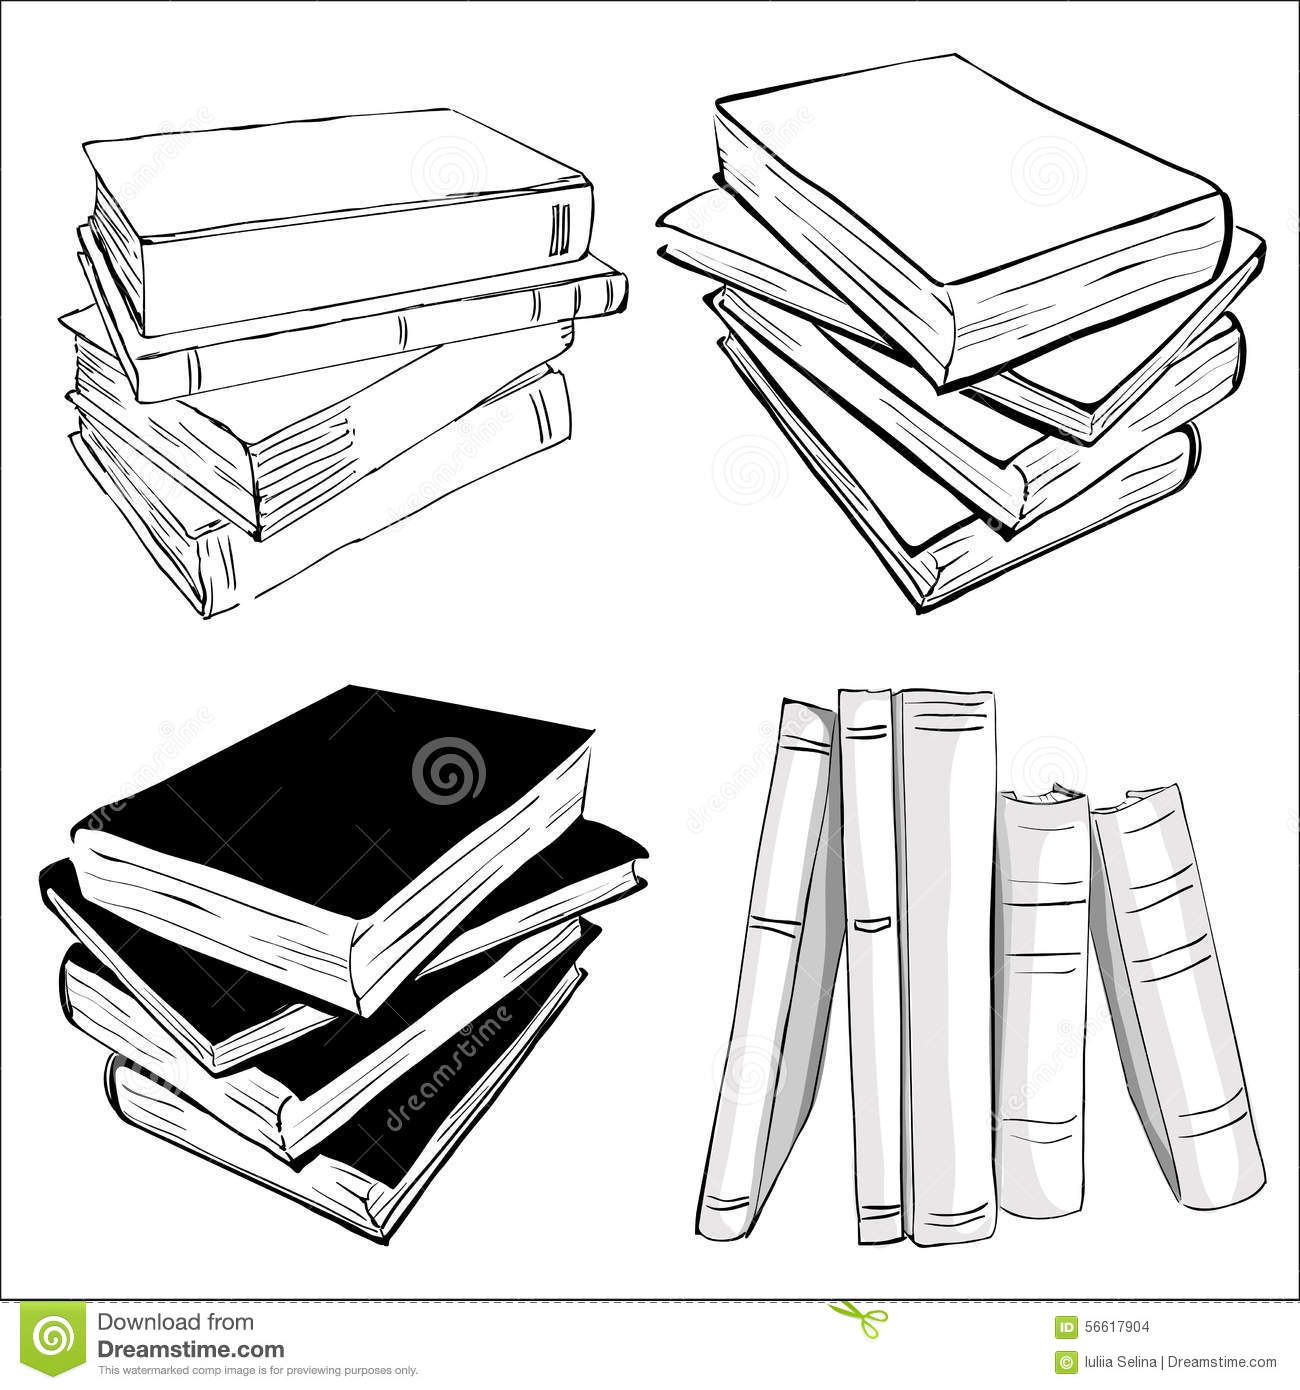 Sketch Of A Stack Books Stock Vector - Image: 56617904